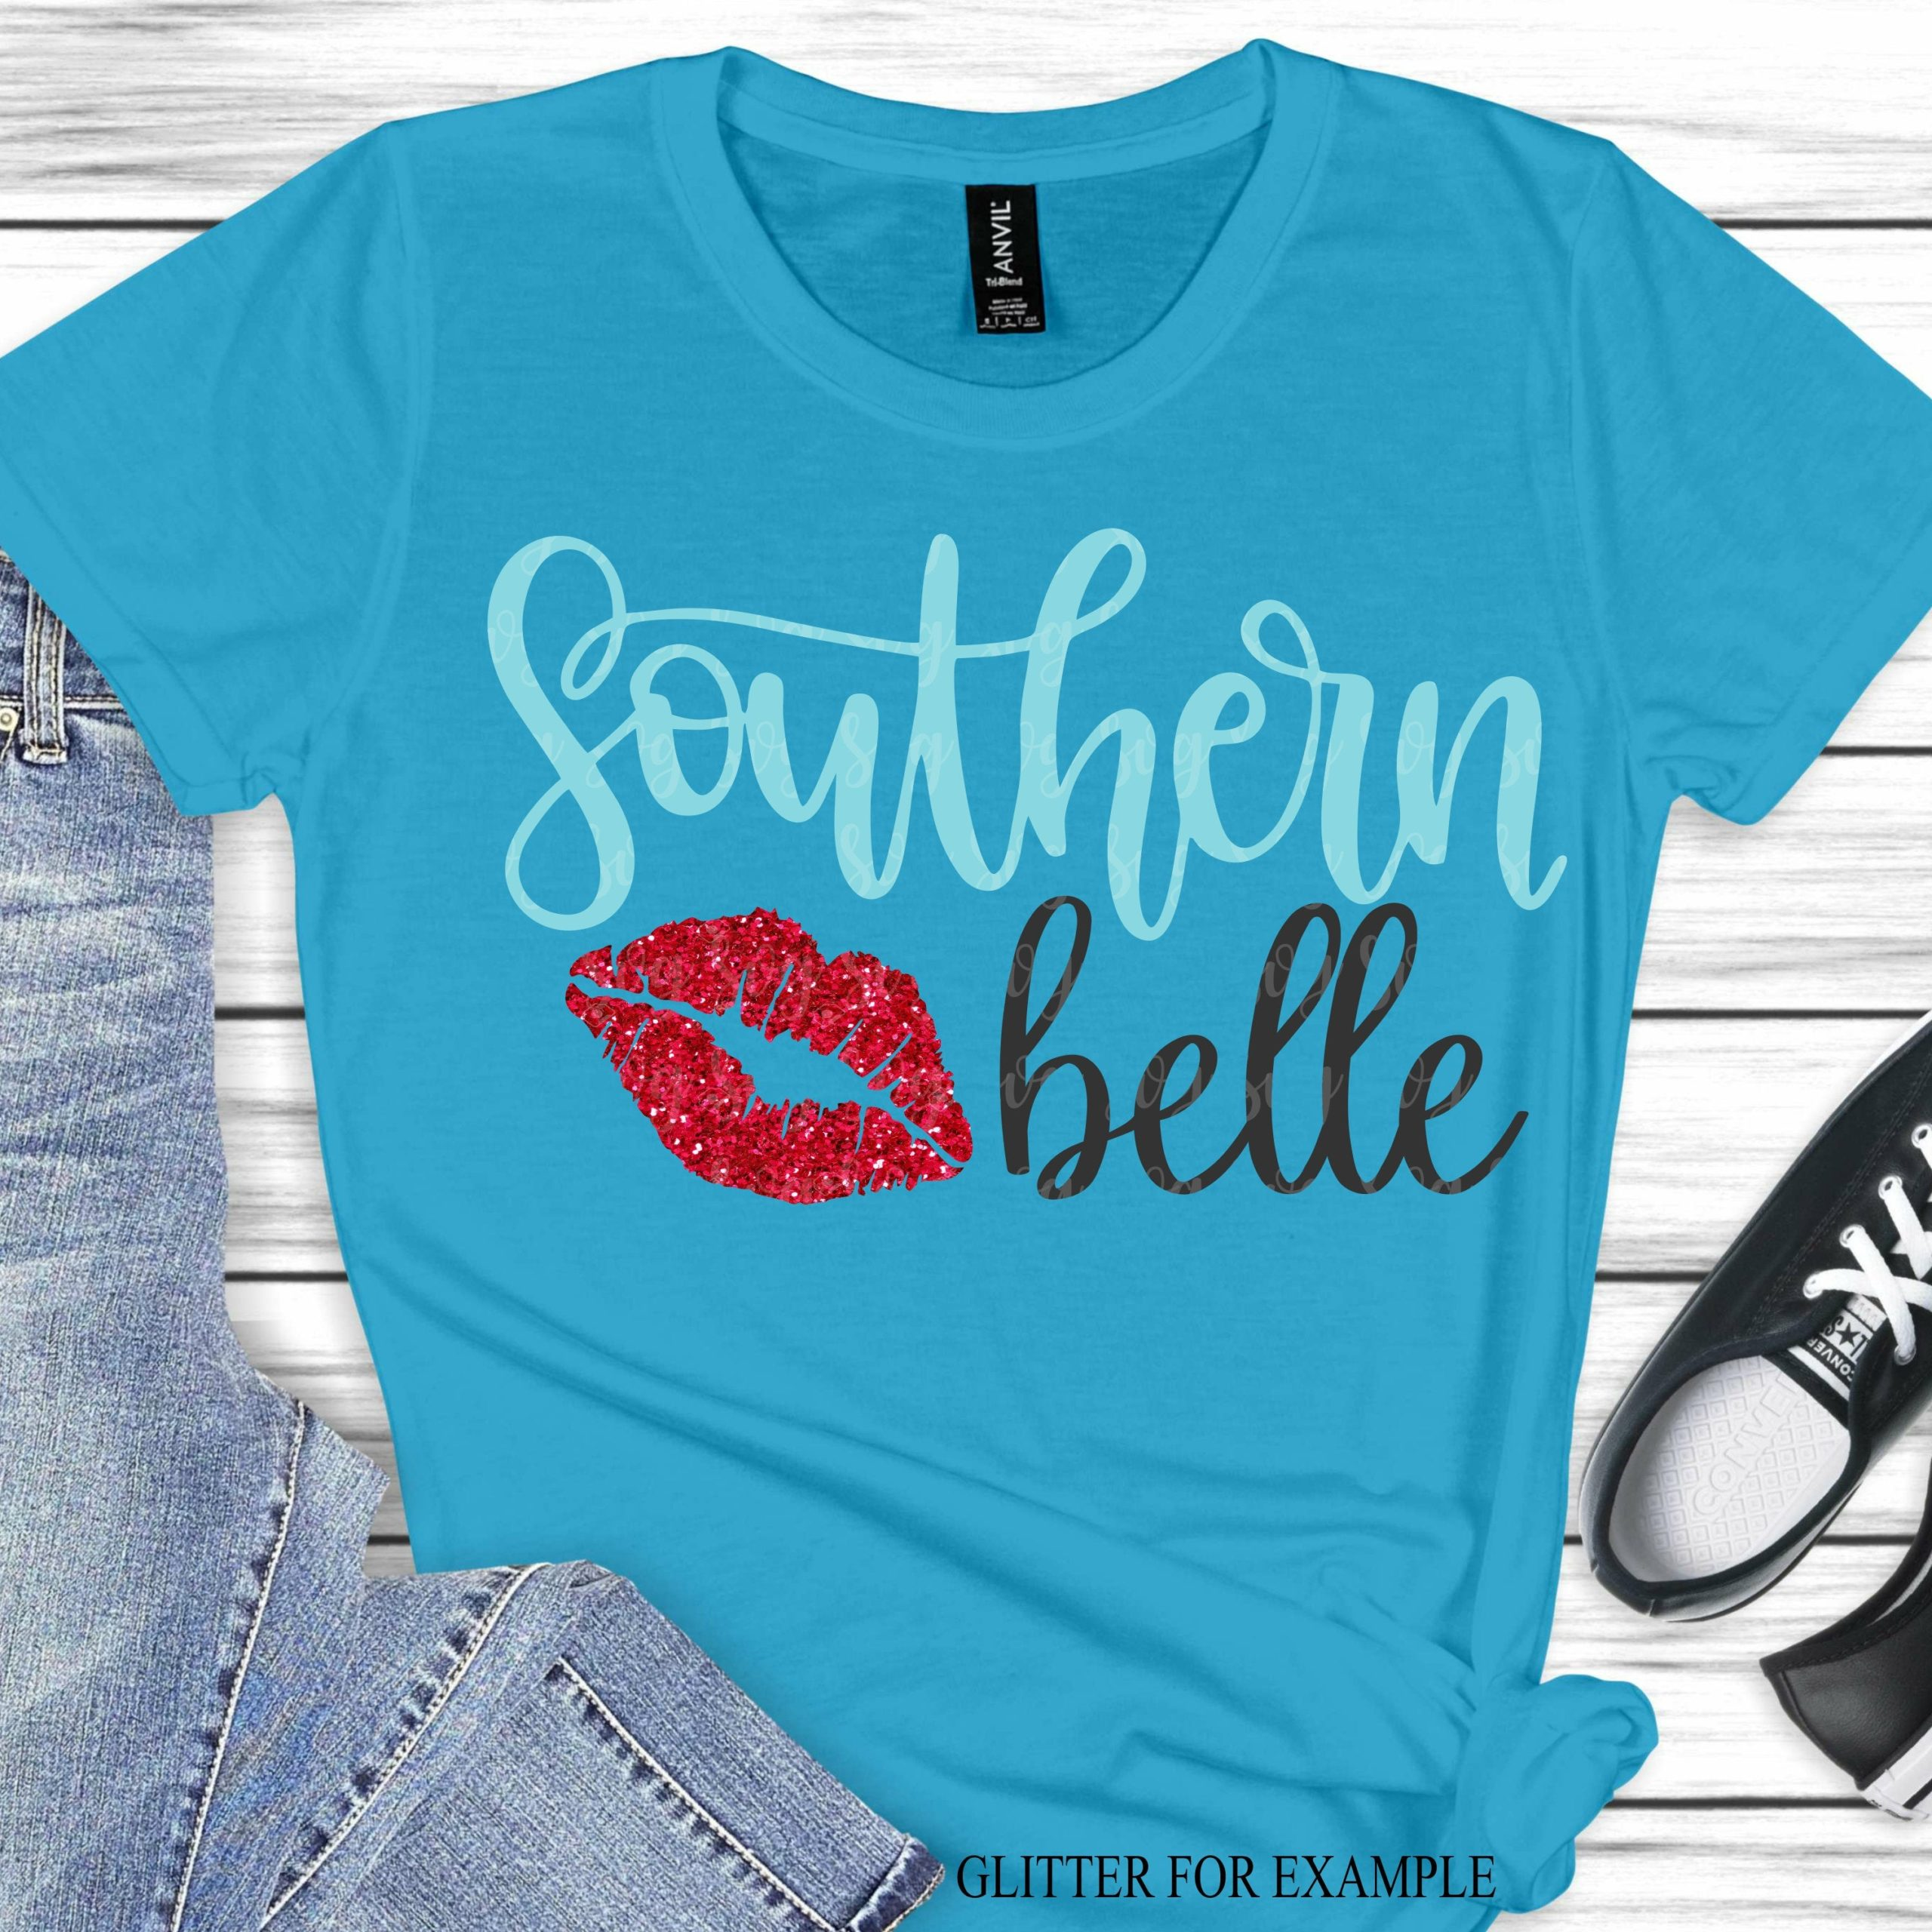 Southern-belle-svg-southern-quote-svg-southern-svg-country-svg-southern-saying-svg-svg-for-cricut-silhouette-cut-file-lips-svg-5ef78f45